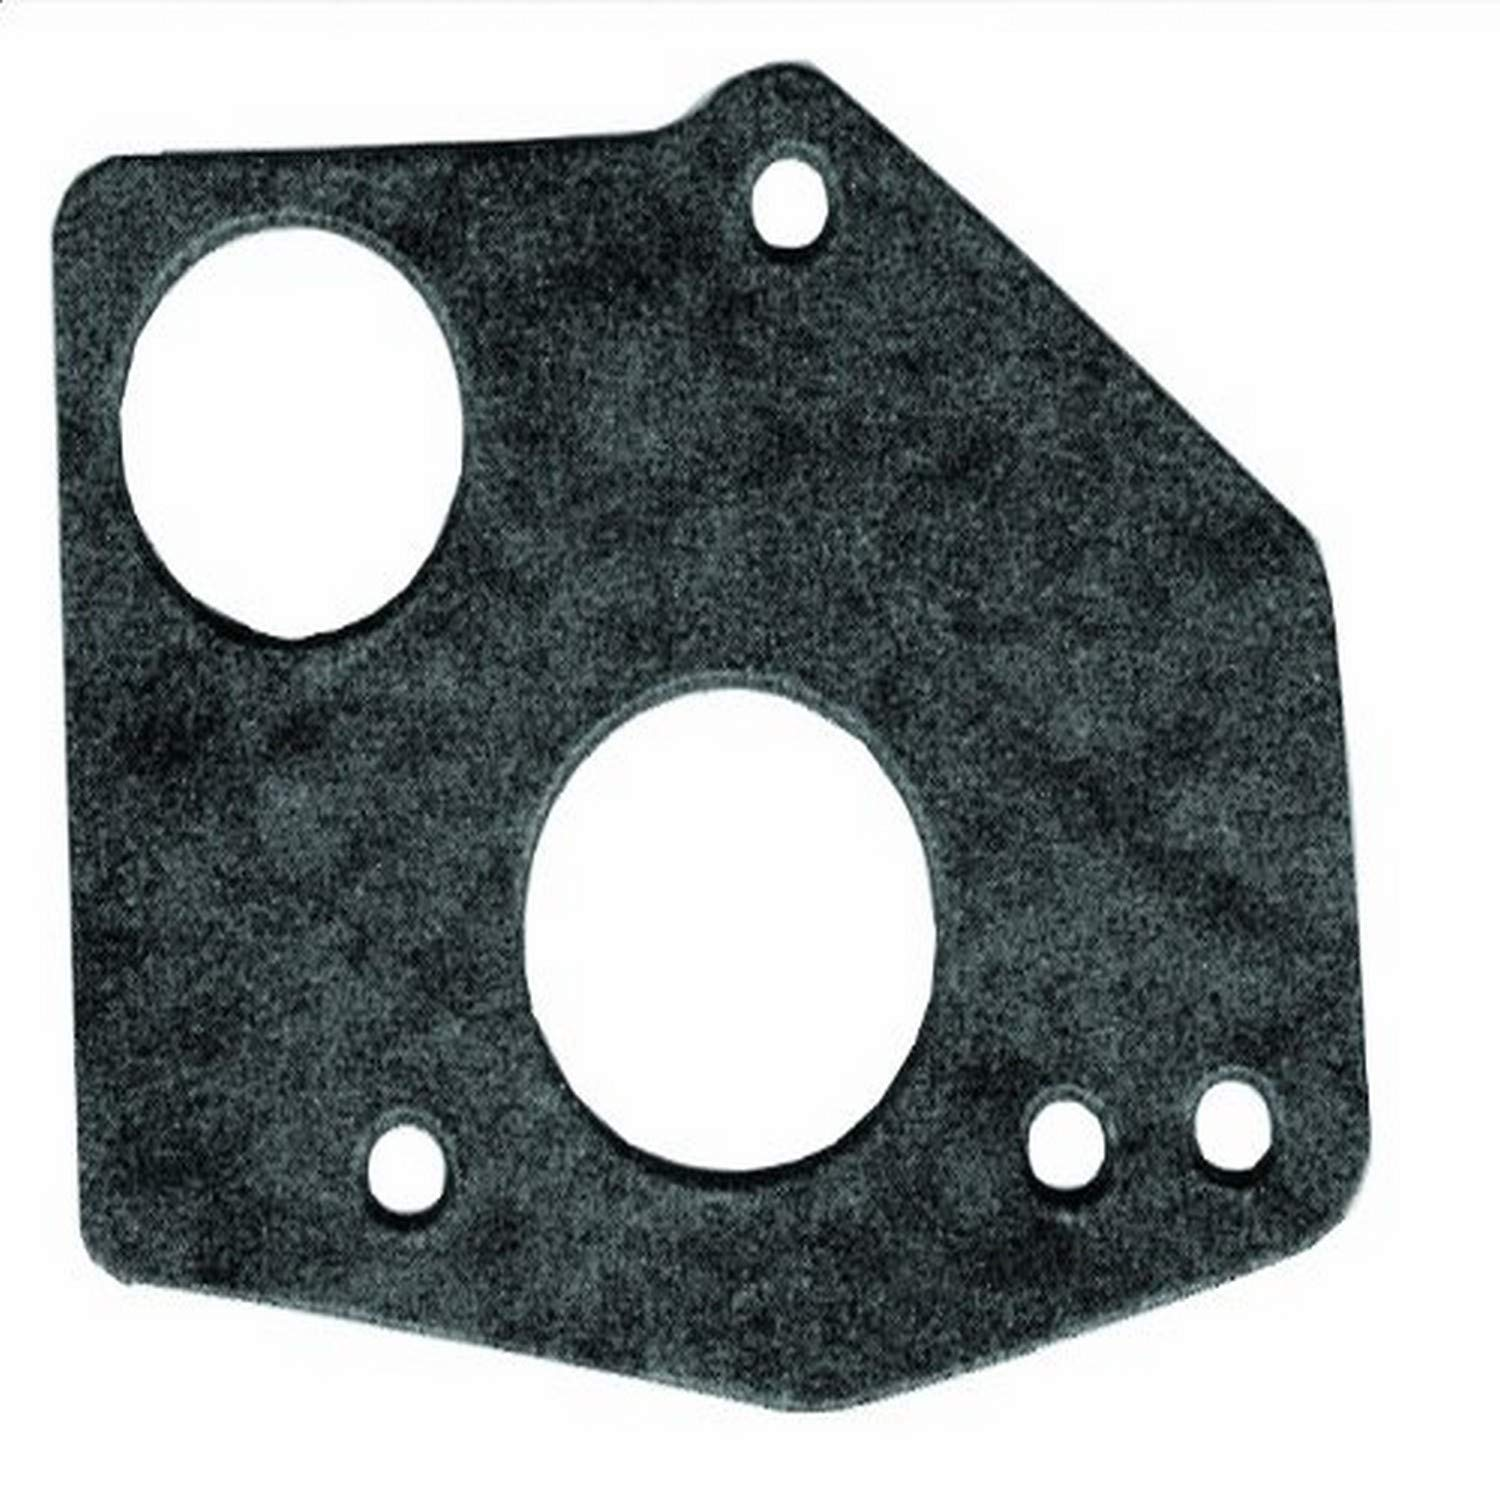 272409 27911 Oregon 49-099 Tank Mounting Gasket Replacement for Briggs /& Stratton 272409S 271592